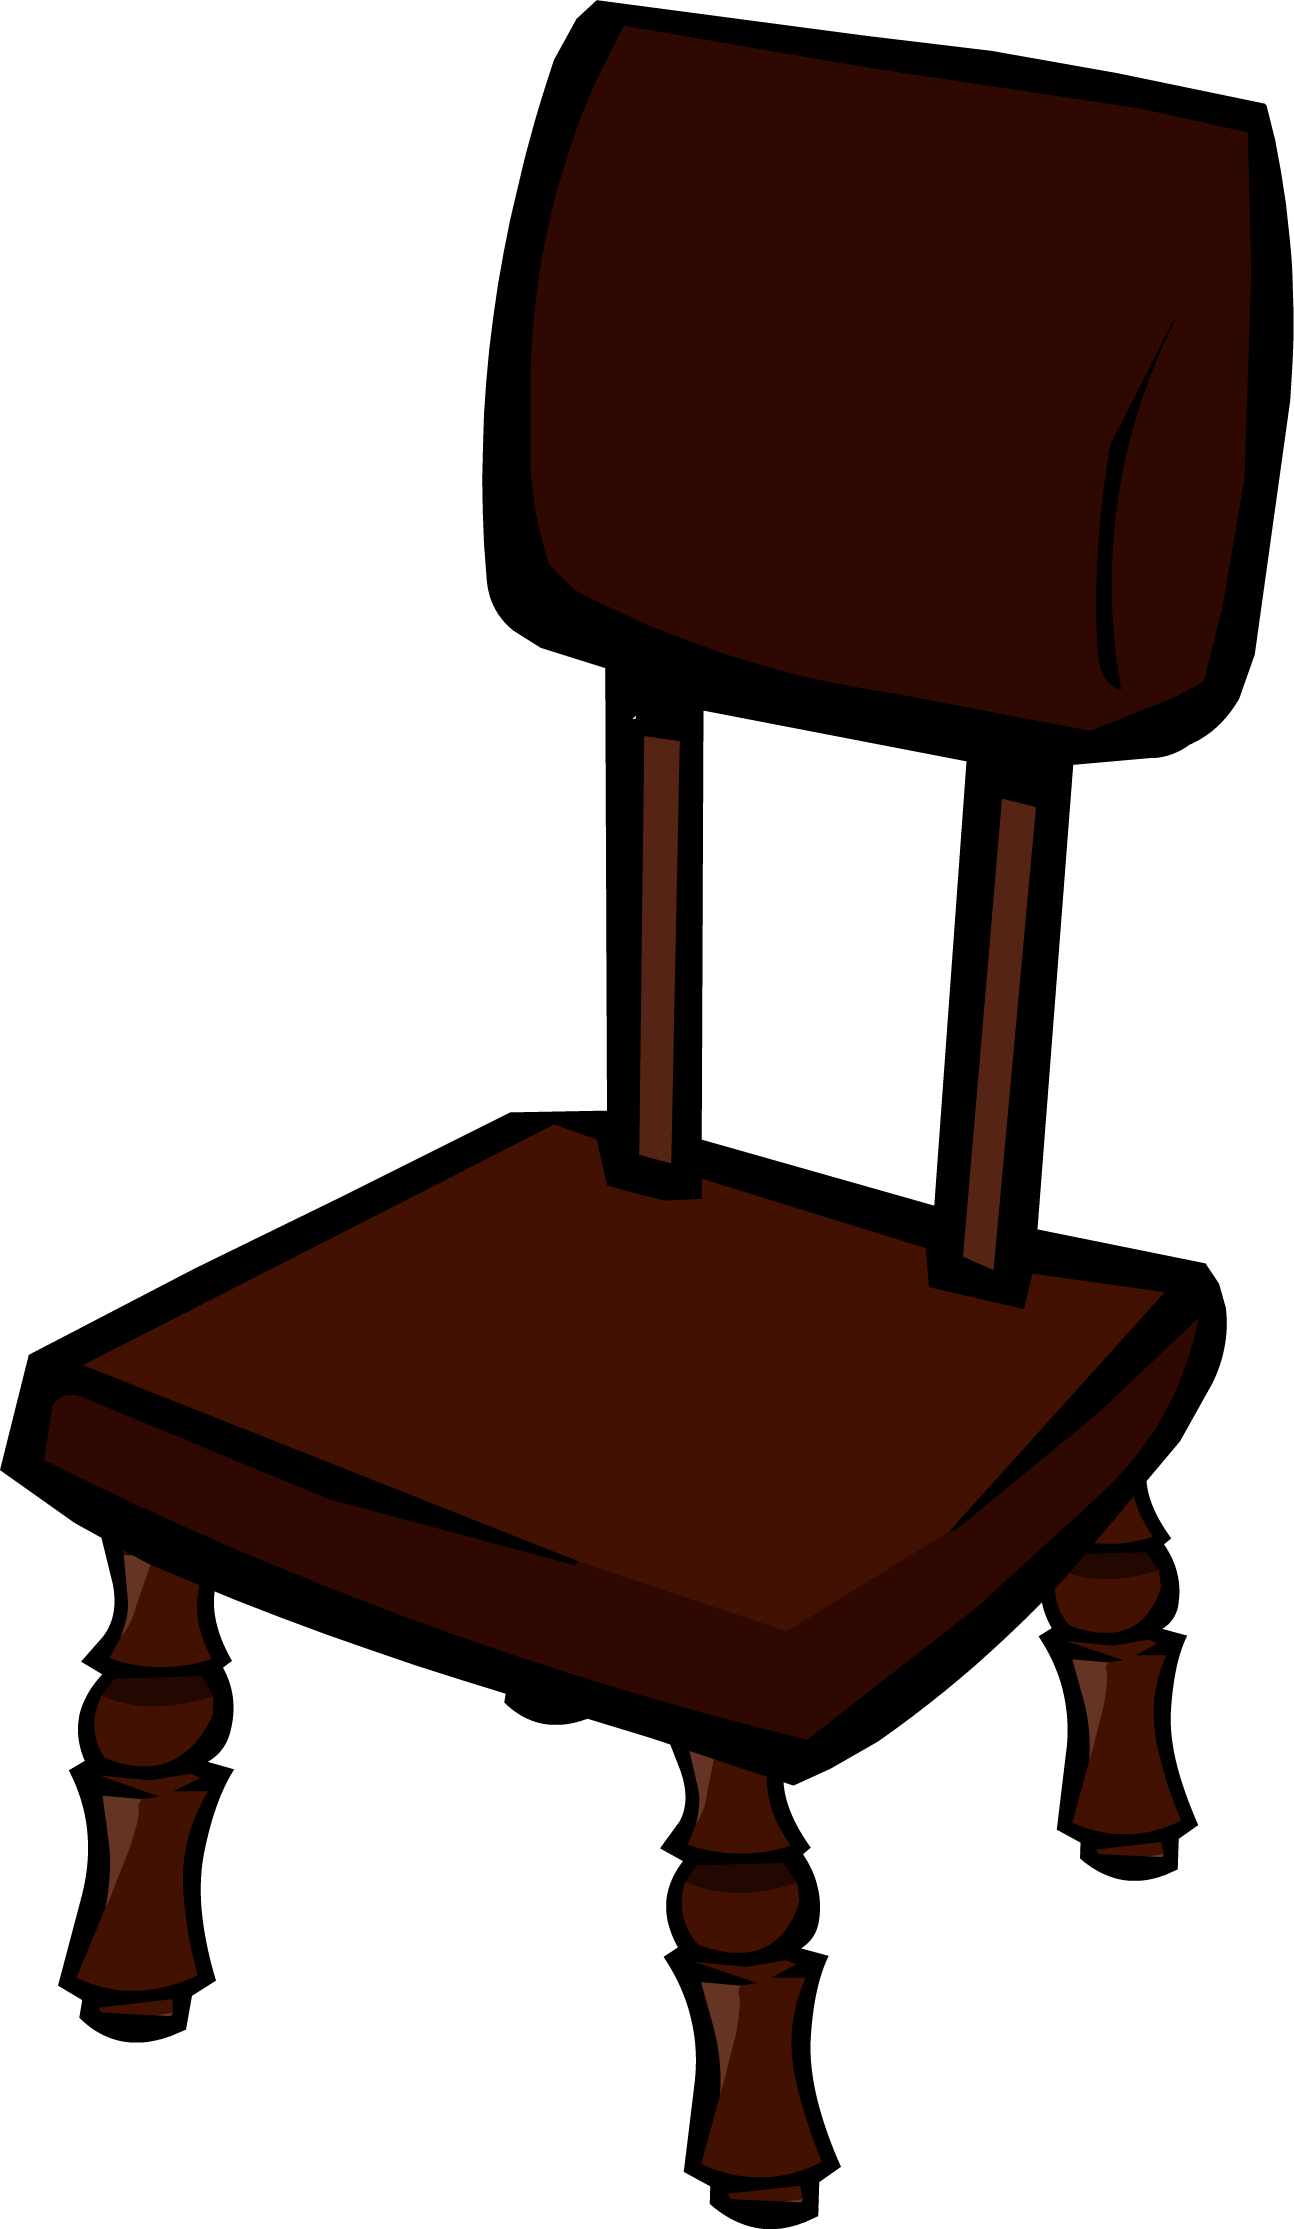 rosewood chair club penguin wiki fandom powered by wikia rh clubpenguin wikia com